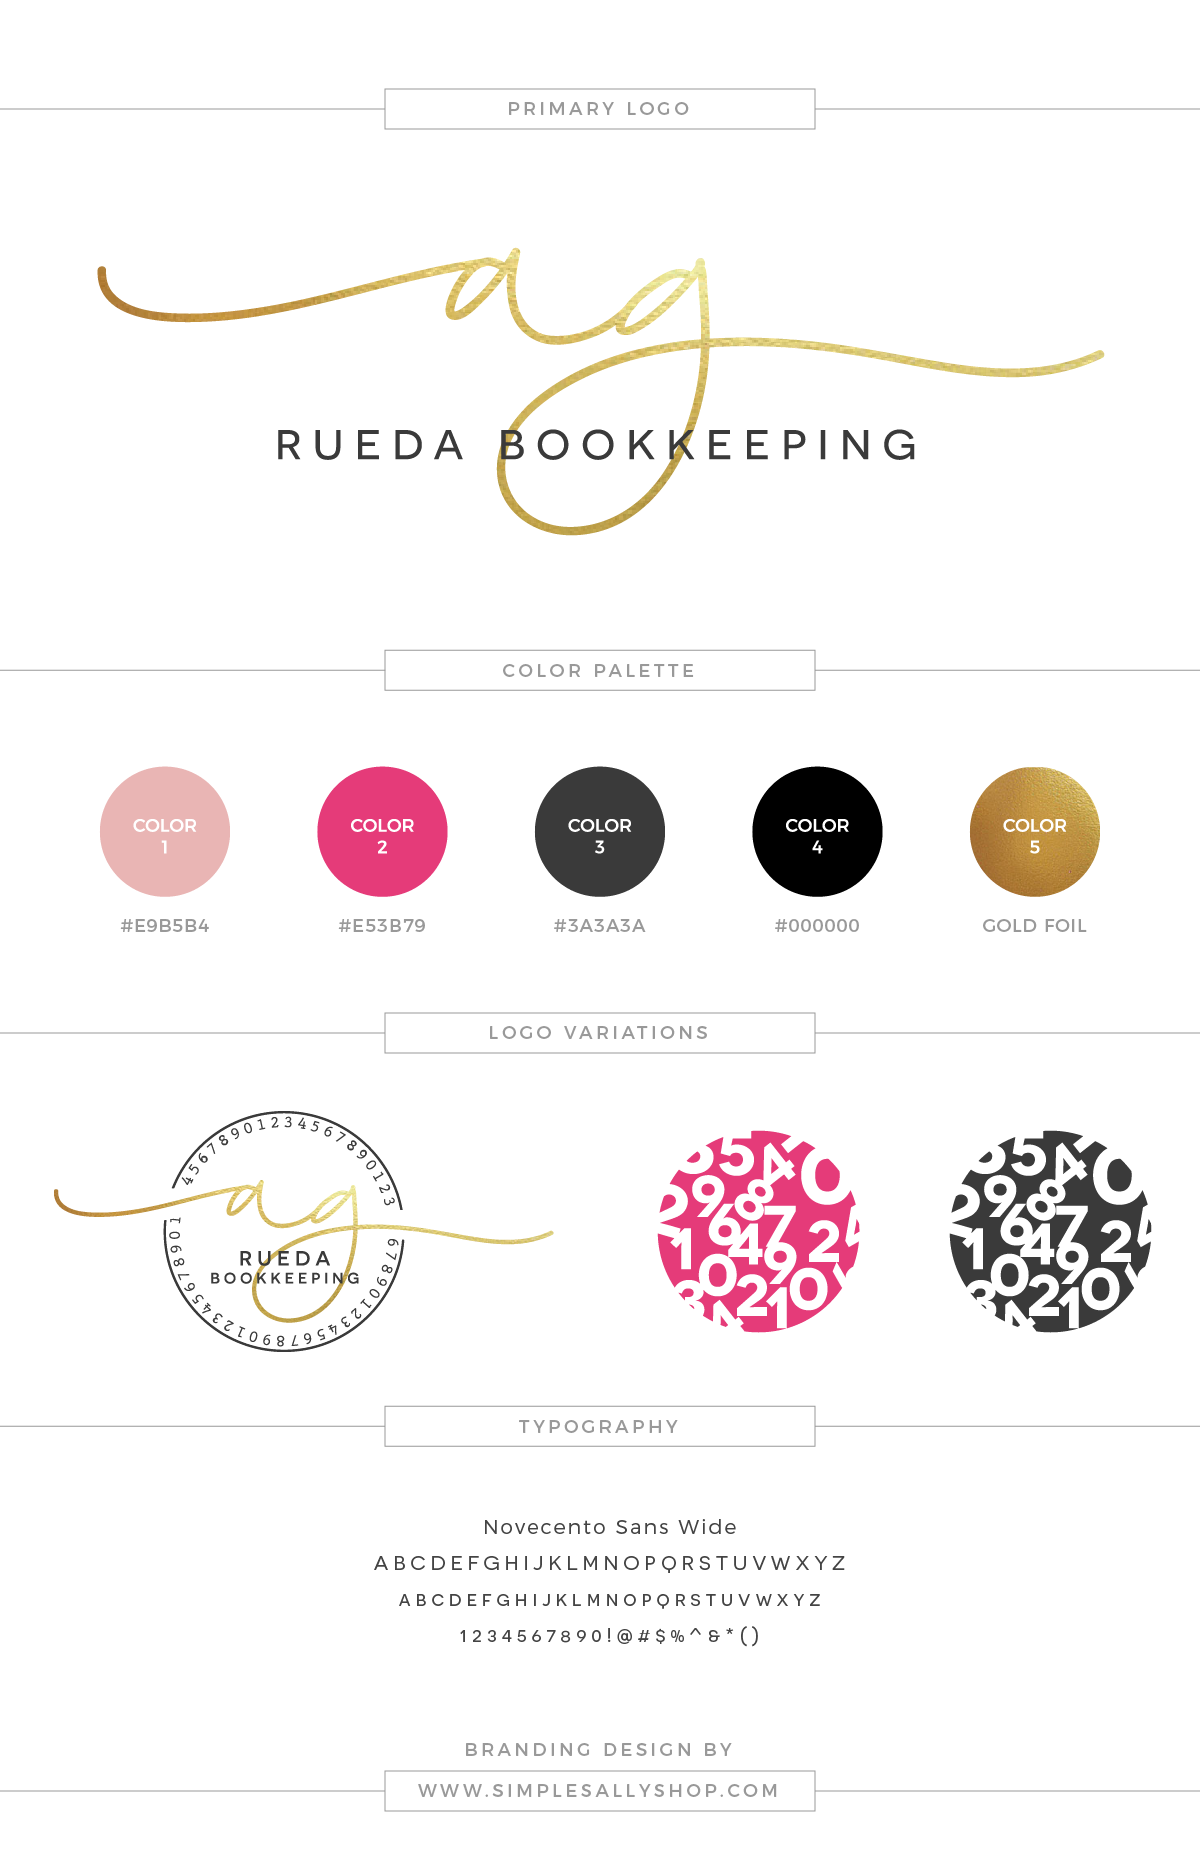 Small Business Logo Design by Simple Sally | #logo #simplelogo #accounting #simplesally